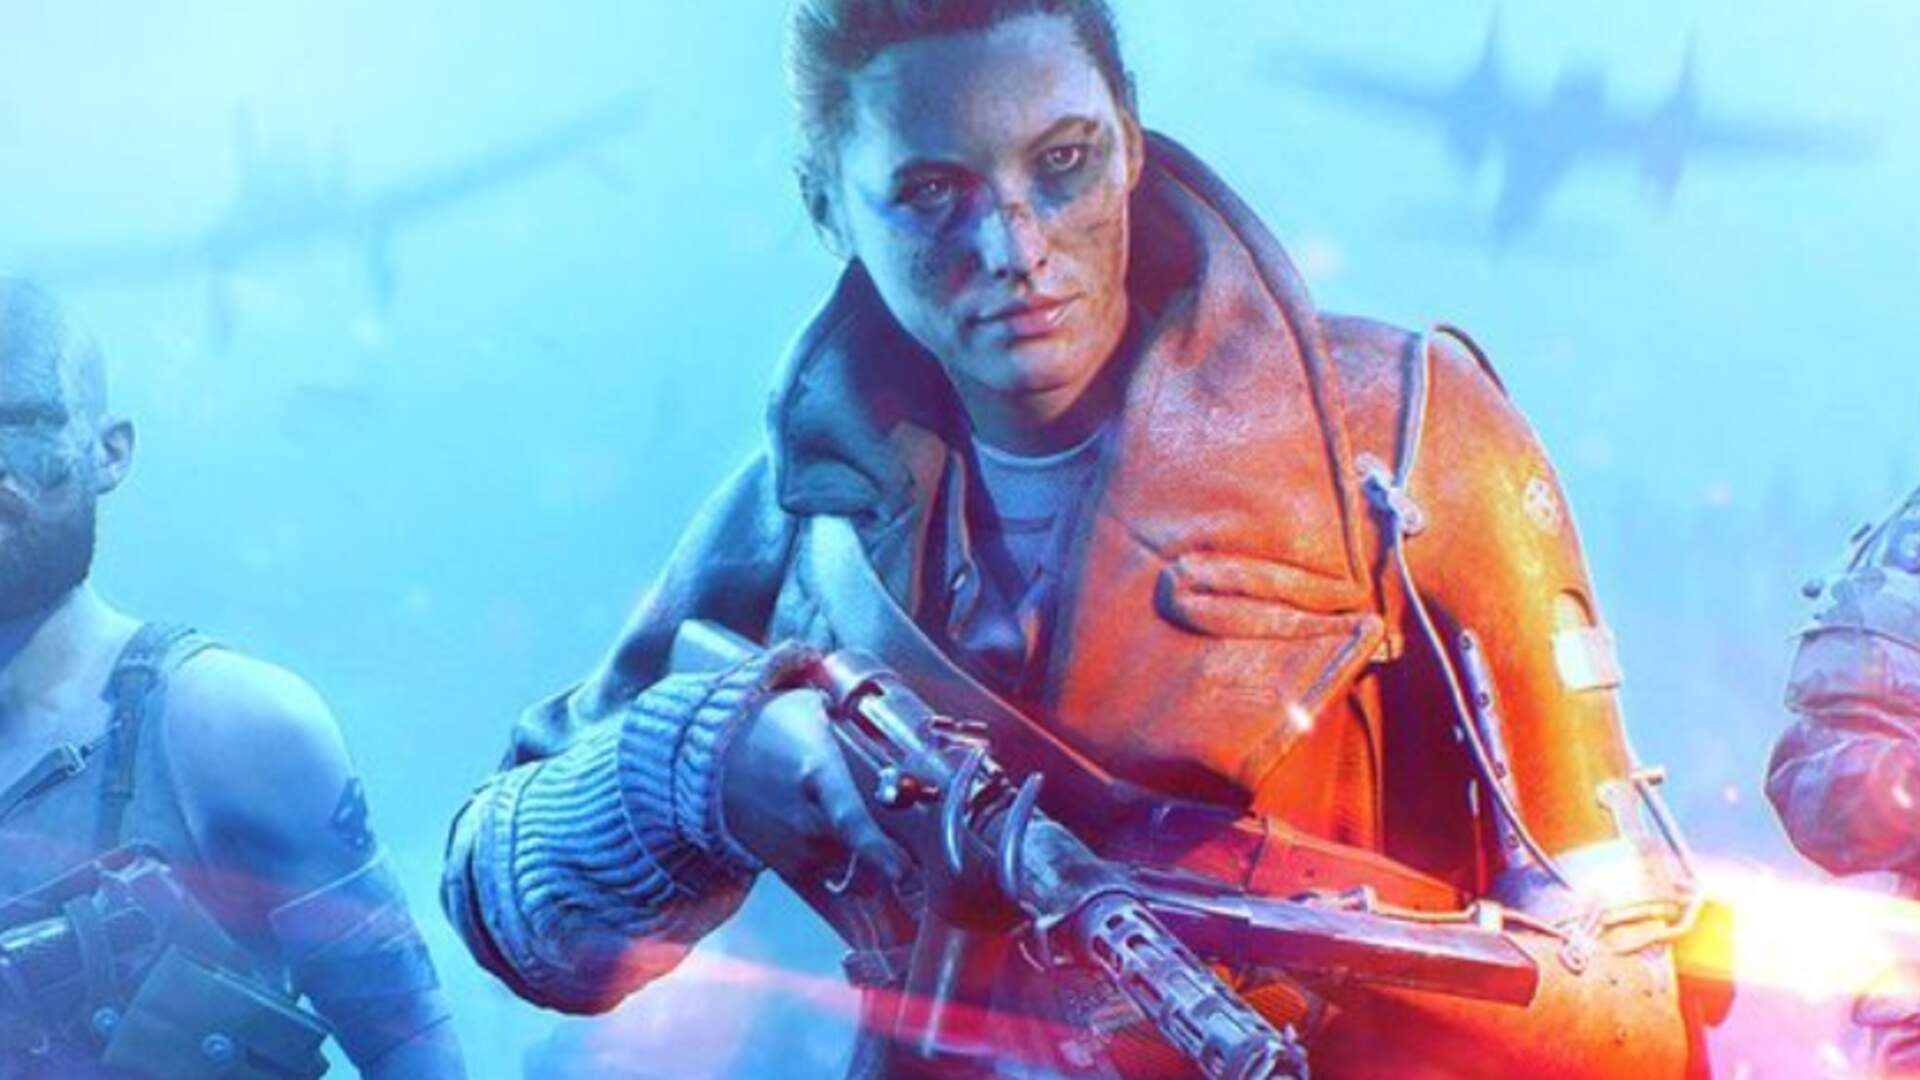 DICE Confirms Battlefield 5 Will Have Royale Post-Launch